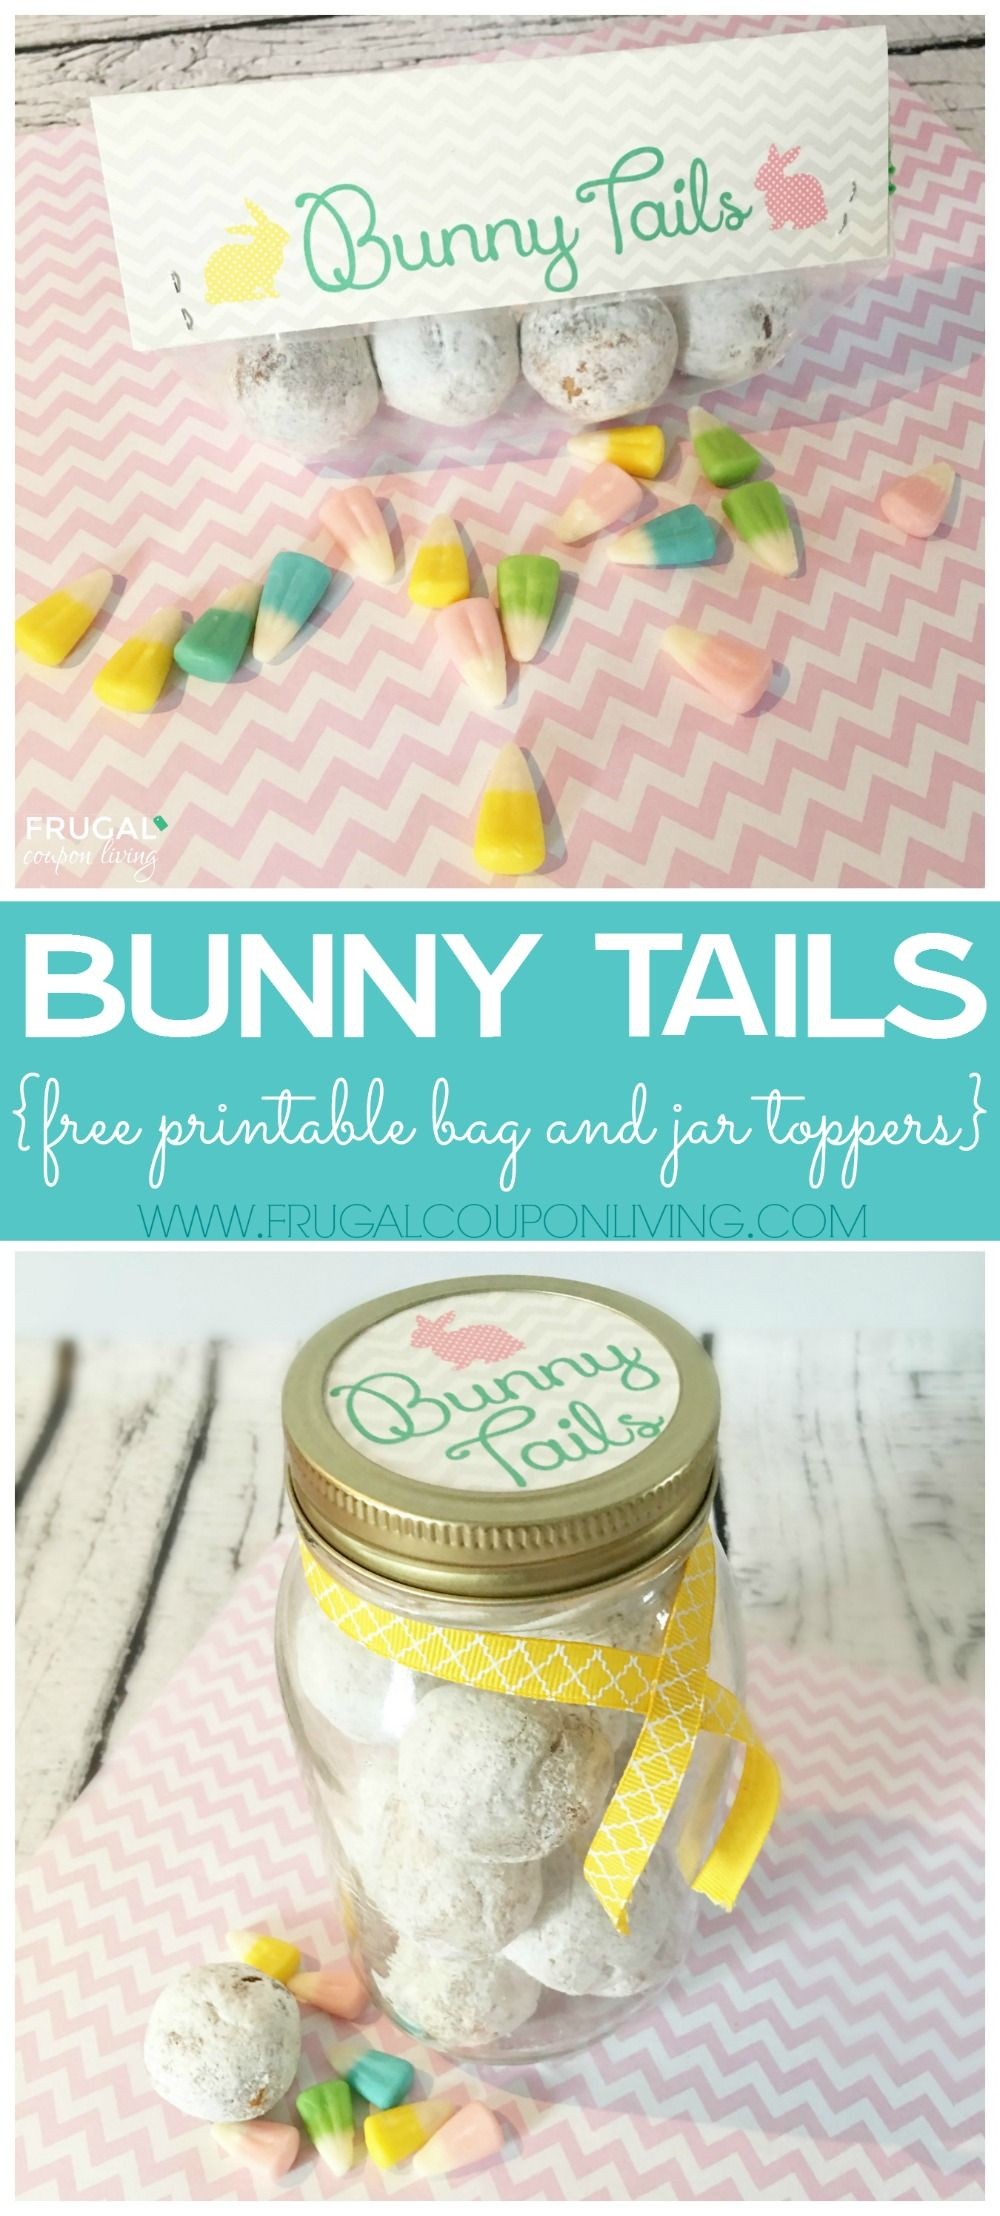 Easter Bunny Tails Printable - Bag Topper and Jar Topper. Great Easter craft. Perfect for a class or Teacher Easter Treat!  #bunnytails #bunnytailsprintable #printable #freeprintable #easter #easterprintables